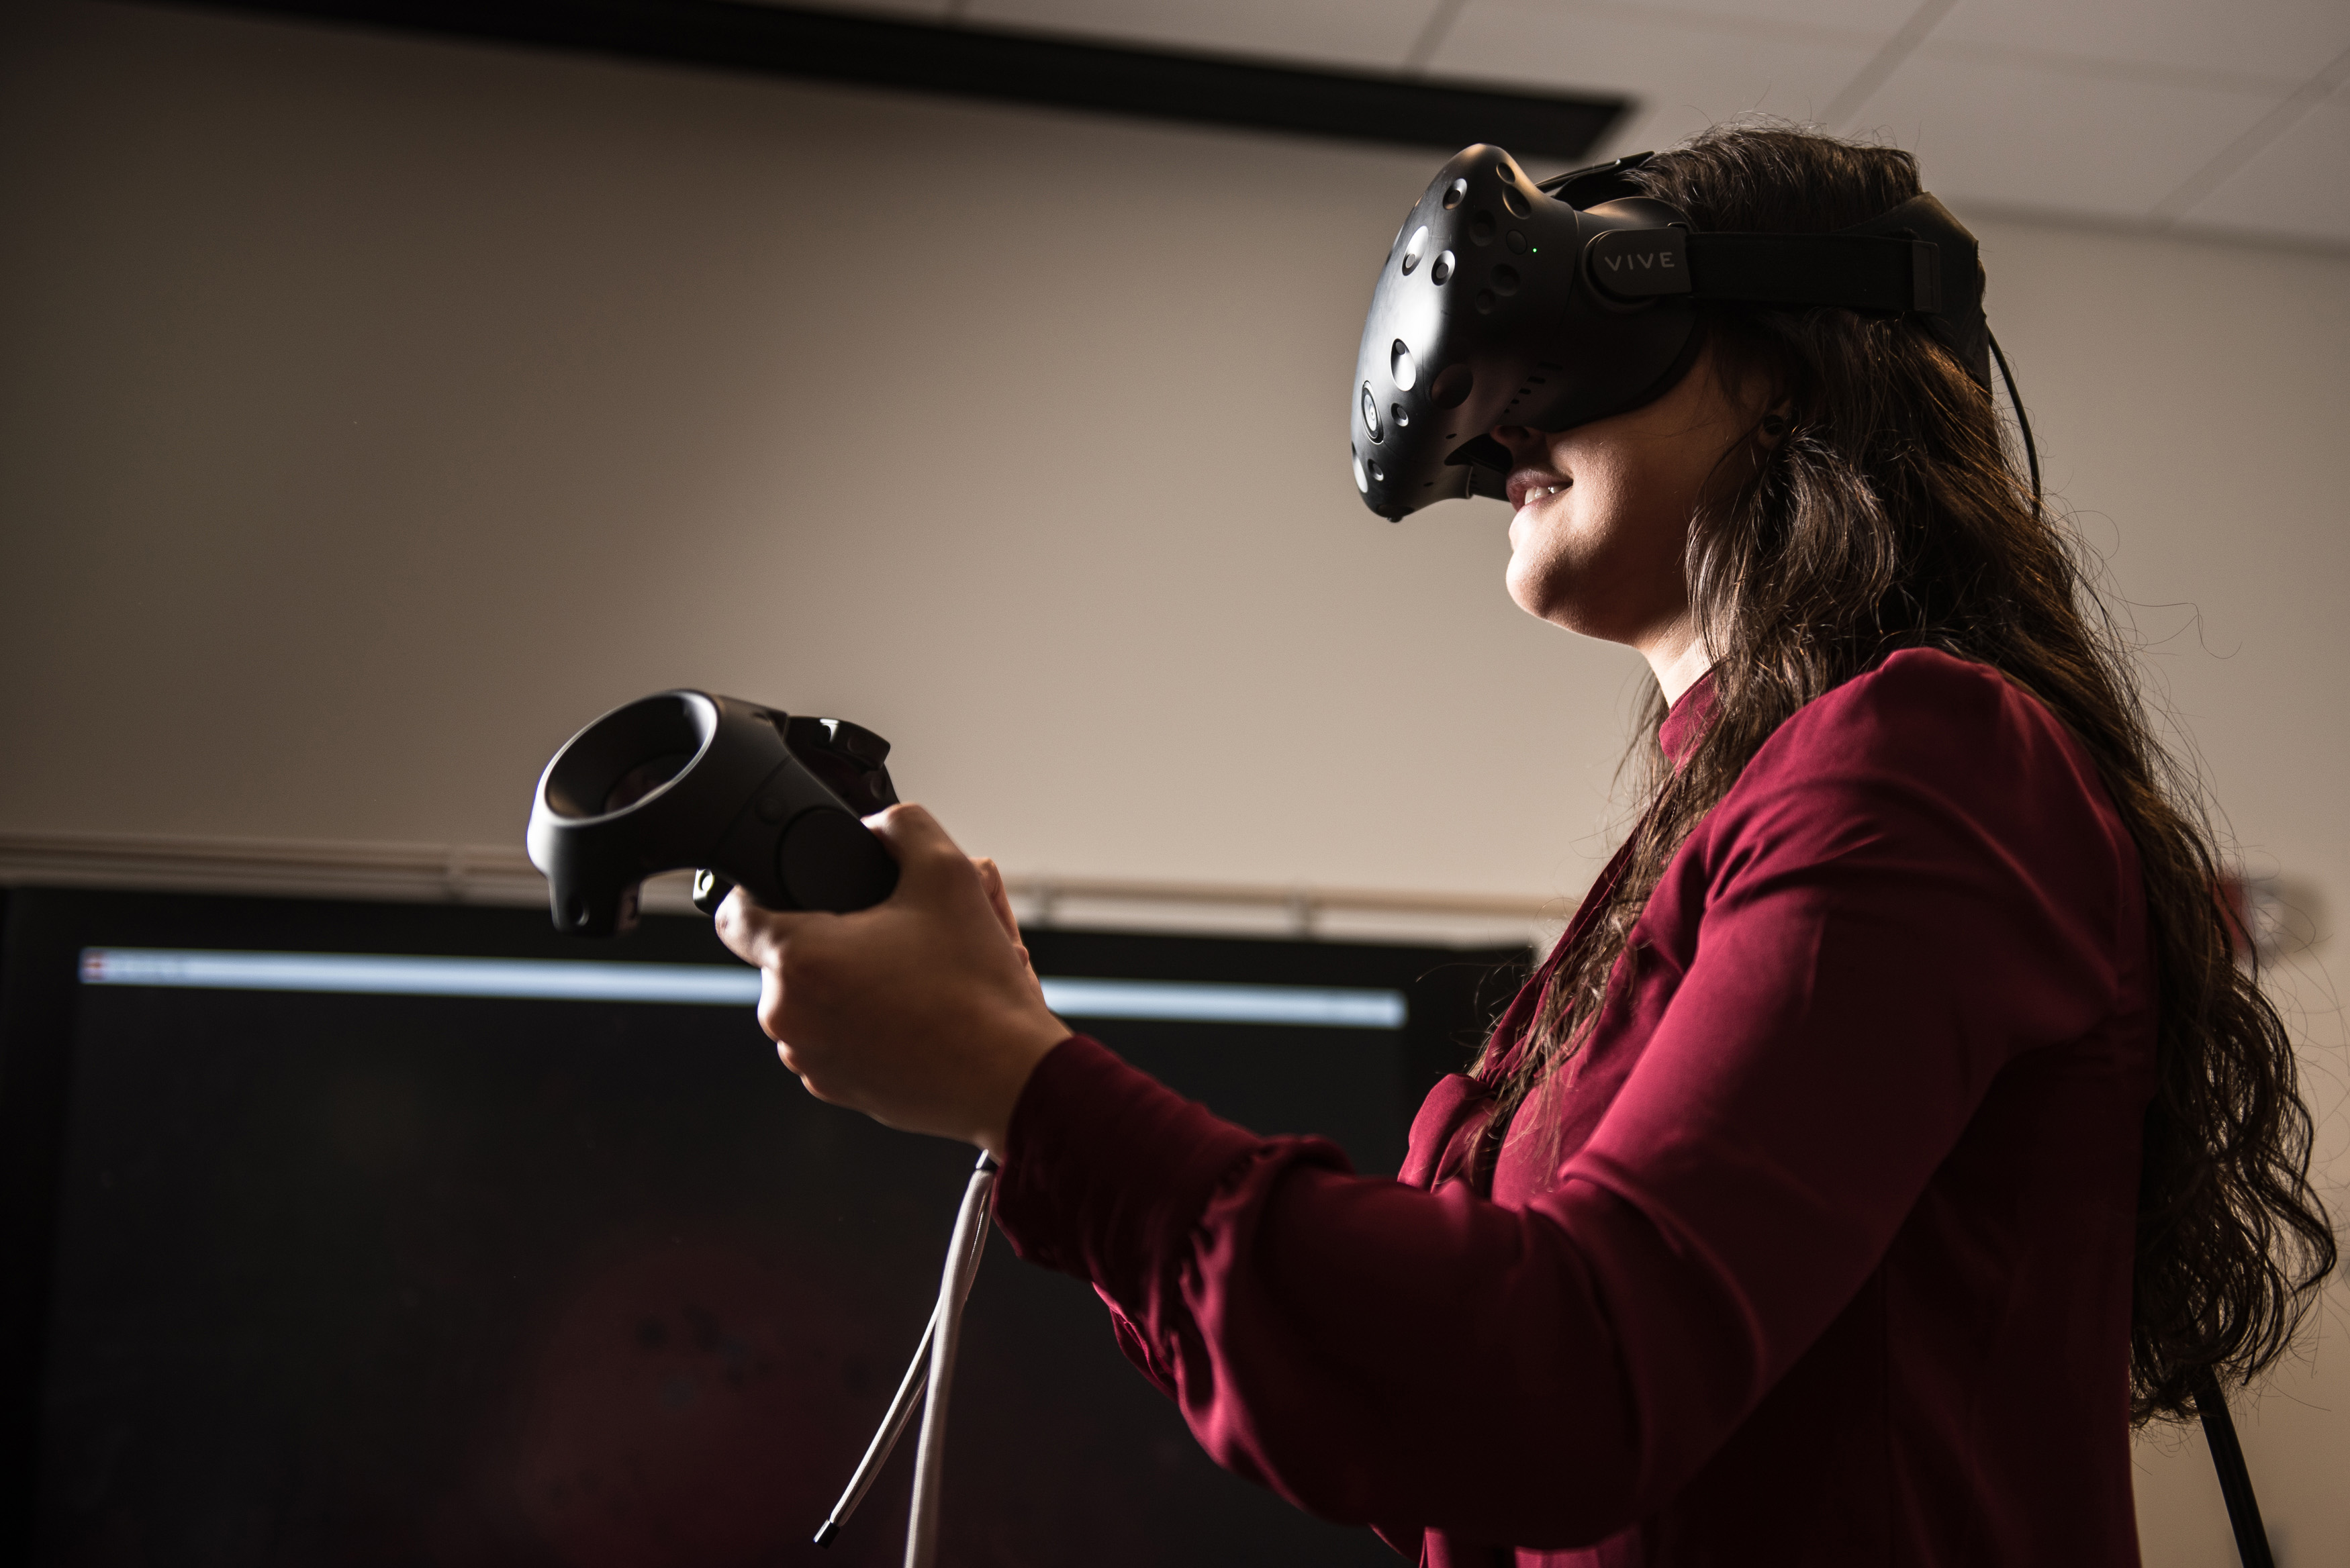 With a virtual reality headset on, junior Carina Zamudio '19 (CLAS) spent part of a Friday afternoon trying to slay villains who were intent on breaching the security around a virtual castle. (Nathan Oldham/UConn School of Business Photo)